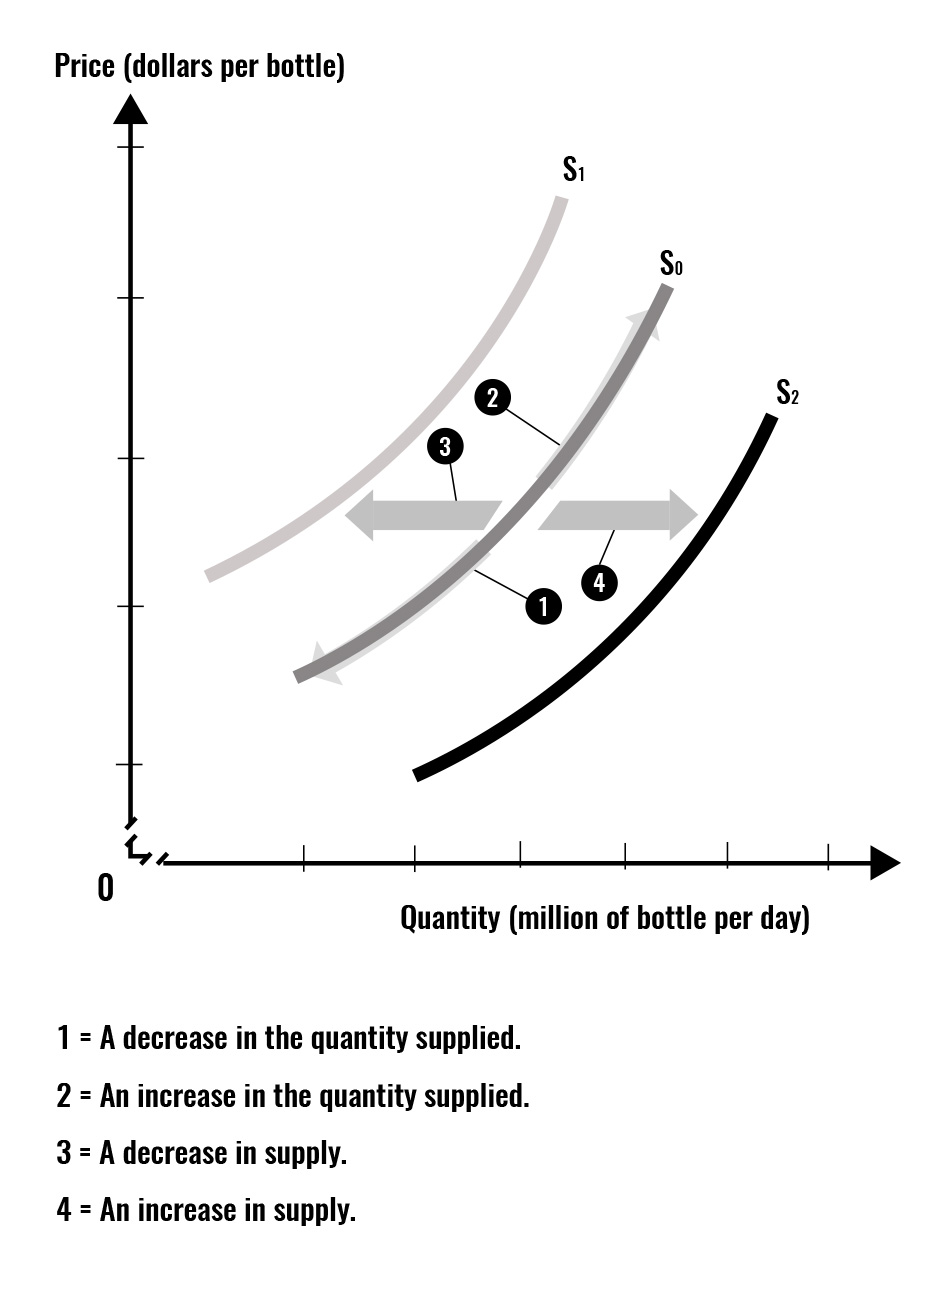 The graph summarizes supply shifters leading to an increase or decrease in supply. In addition, it emphasizes that what causes a movement along the supply curve is the change in the own price of the good or service.